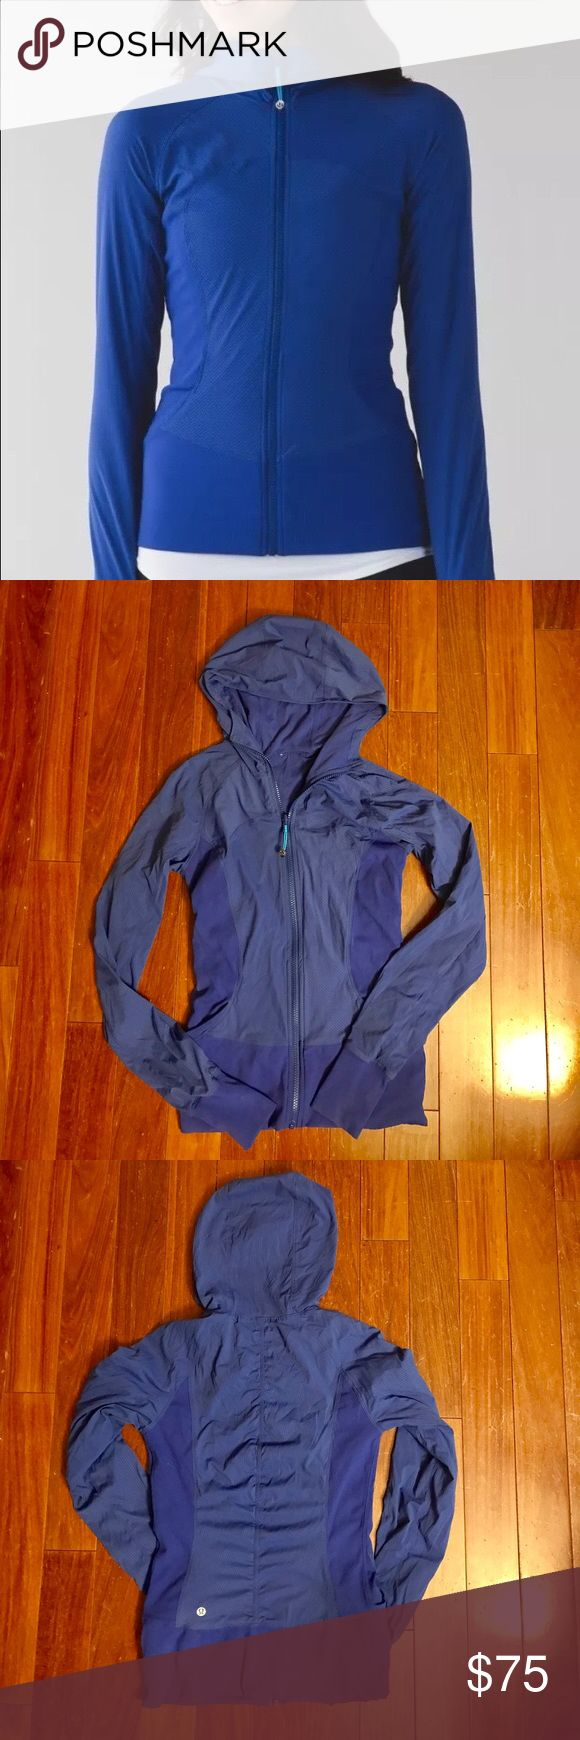 "☀️SALE!!☀️Sapphire Lululemon ""In Flux"" jacket In good, like new condition! No rips, holes, stains or pilling. Worn 3-5 times. Hang dried only! lululemon athletica Tops Sweatshirts & Hoodies"